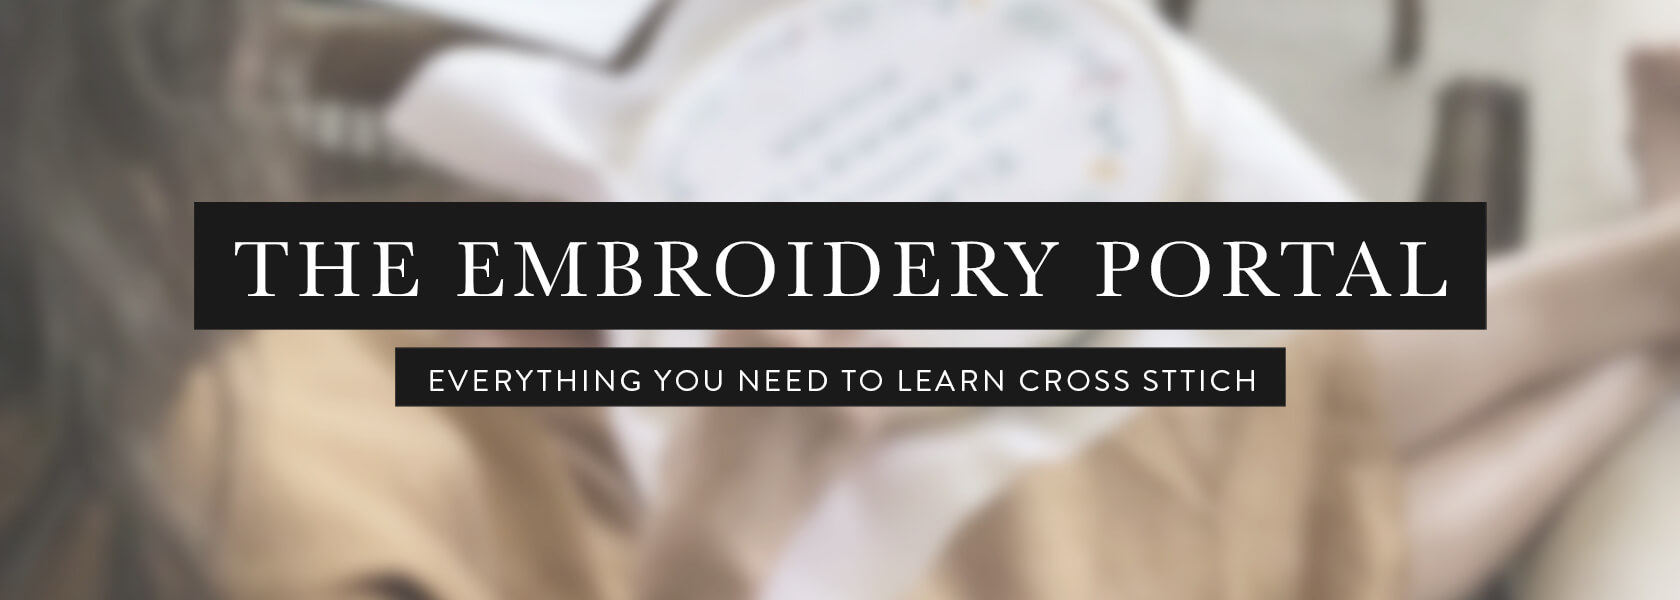 The Embroidery portal - Everything you need to know to cross stitch